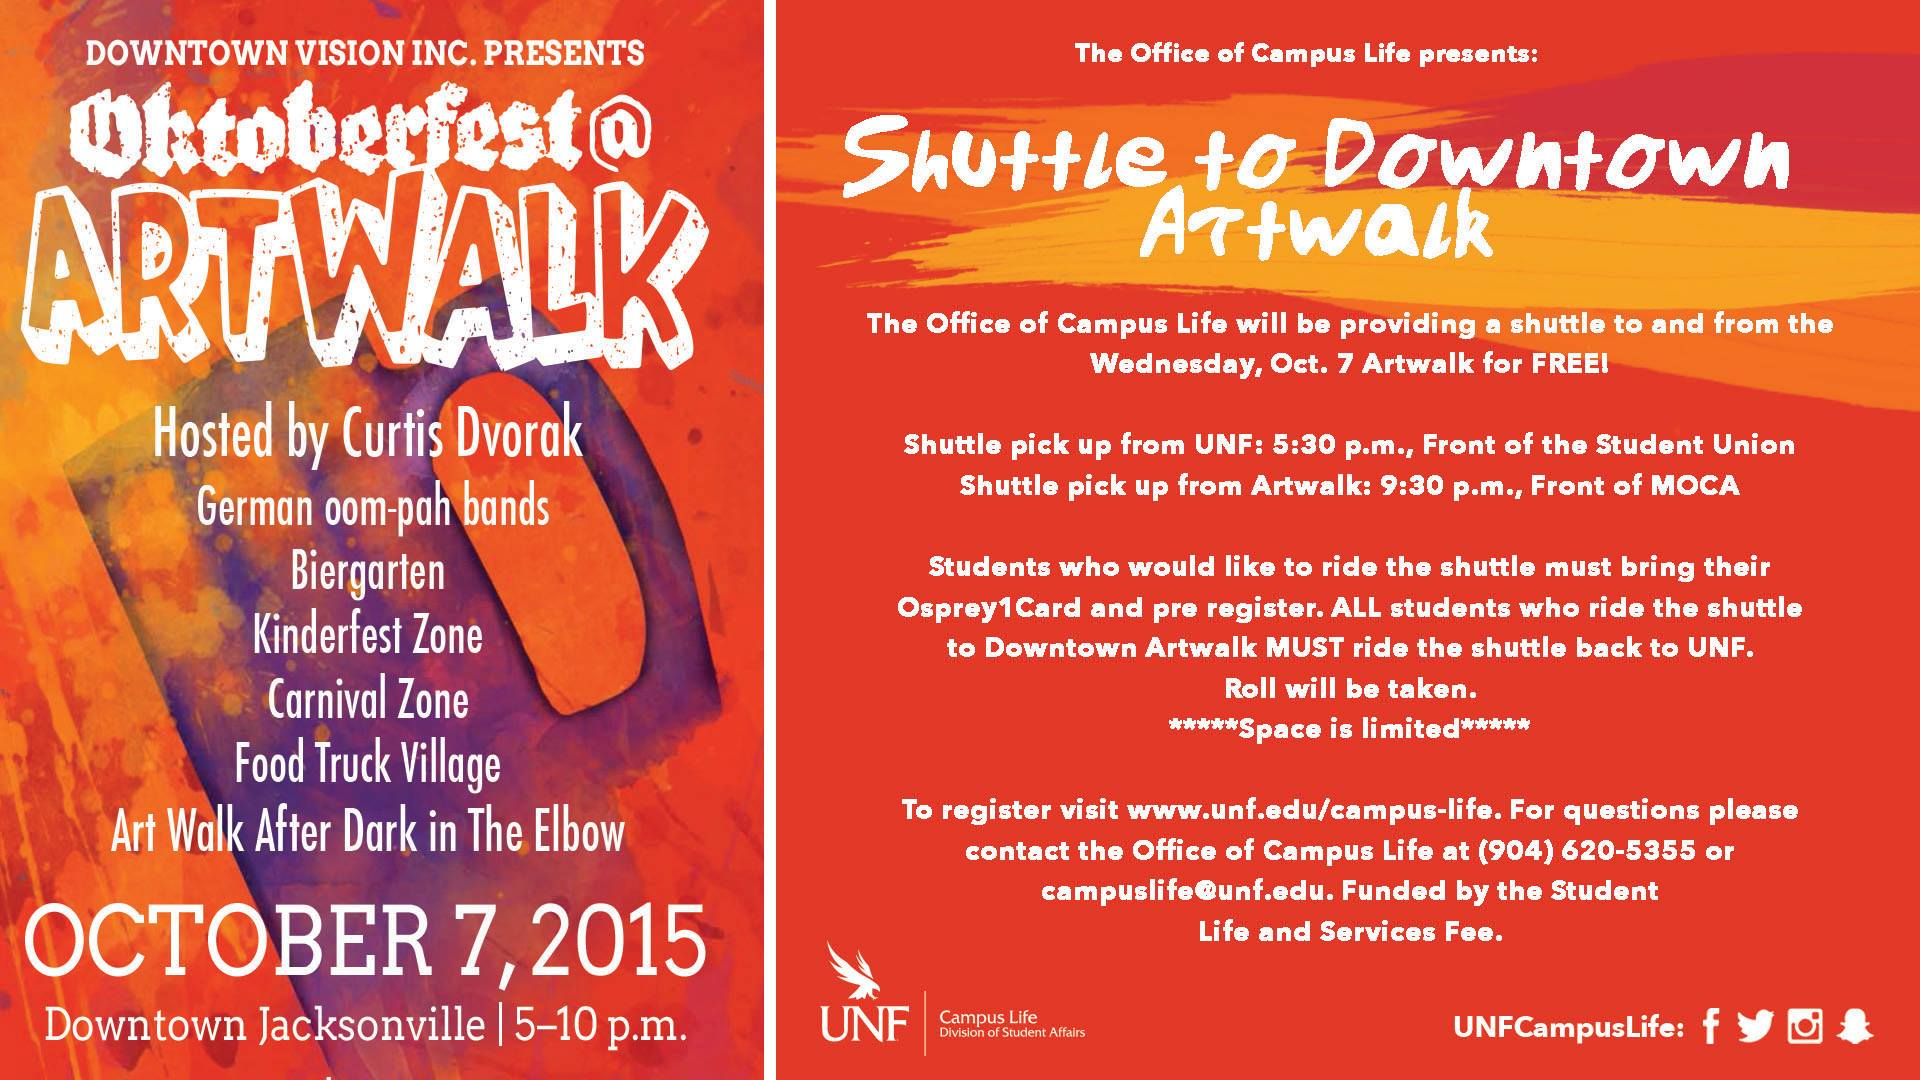 UNF provides shuttle to this month's Oktoberfest Artwalk